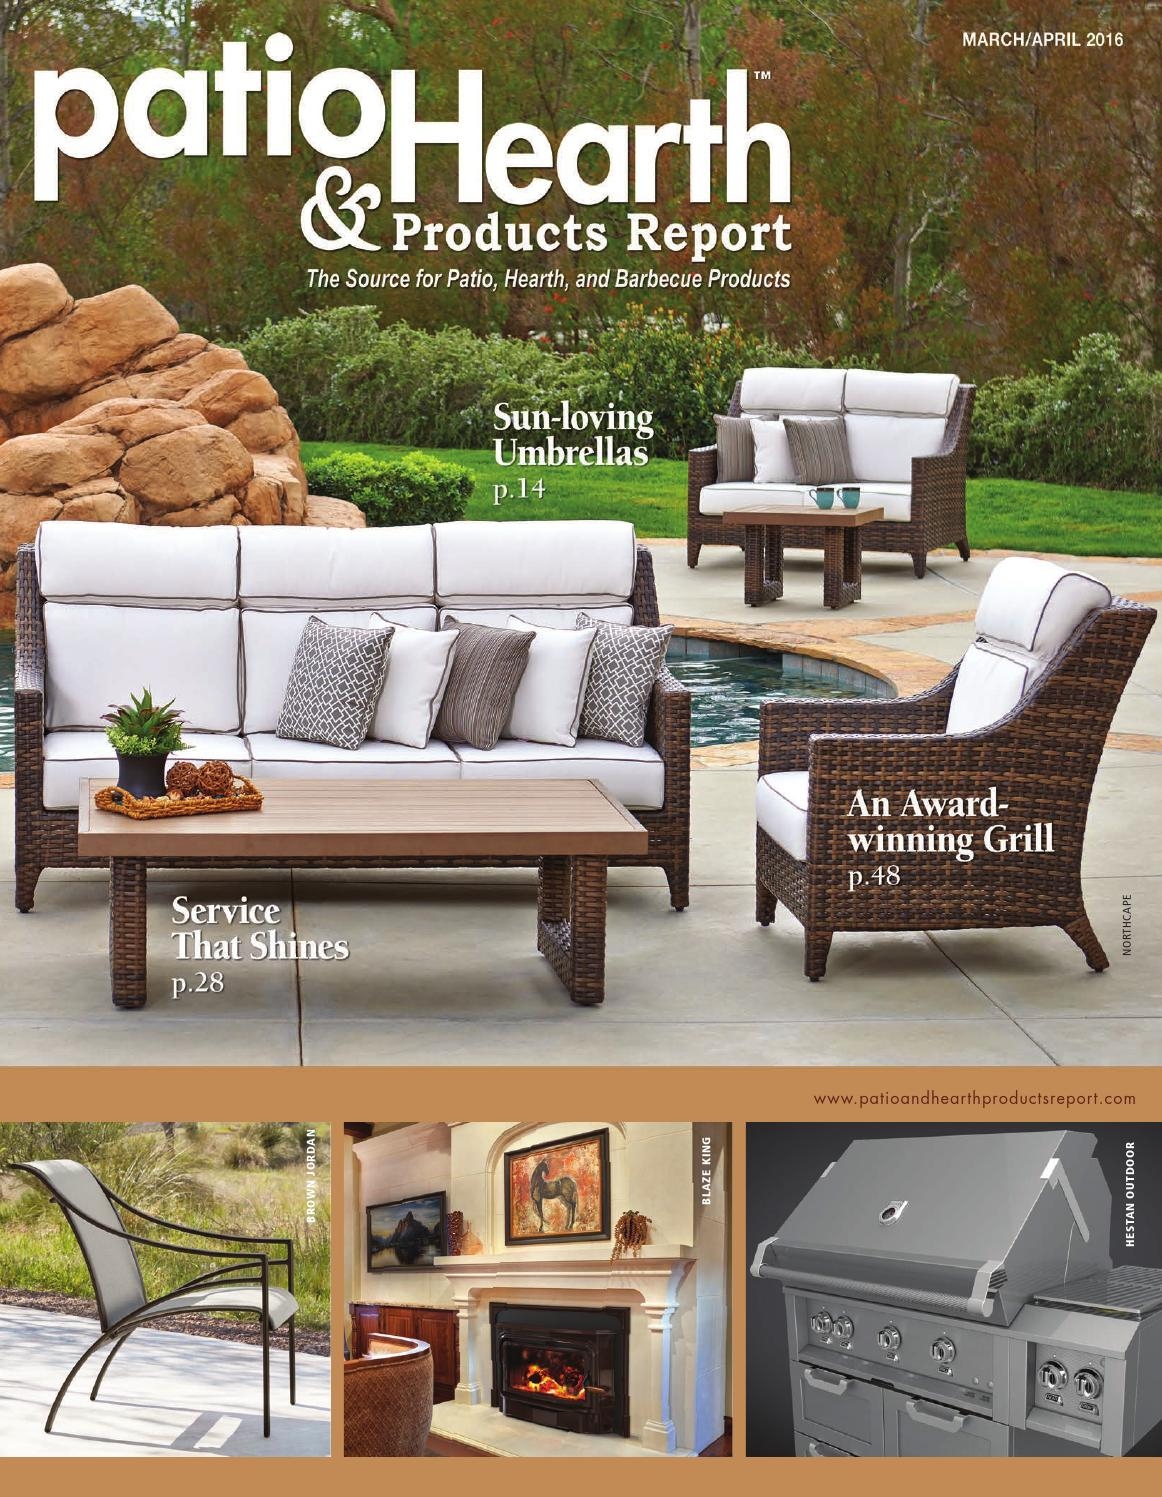 Ordinaire Patio U0026 Hearth Products Report March April 2016 By Peninsula Media   Issuu